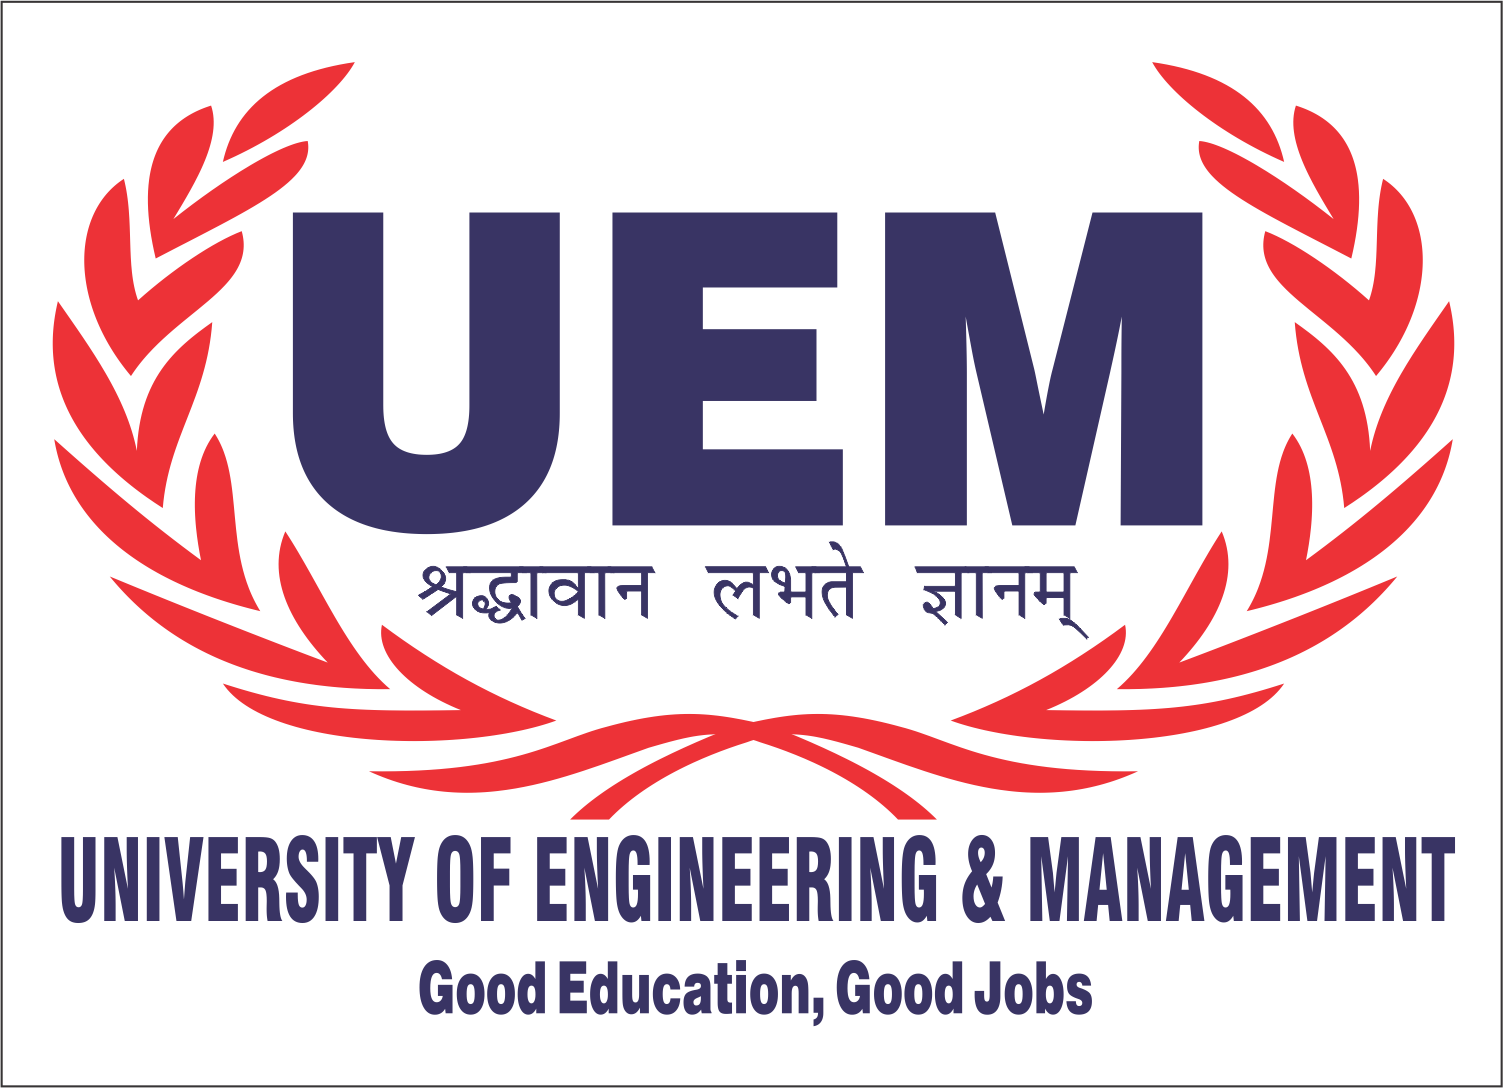 University of Engineering & Management